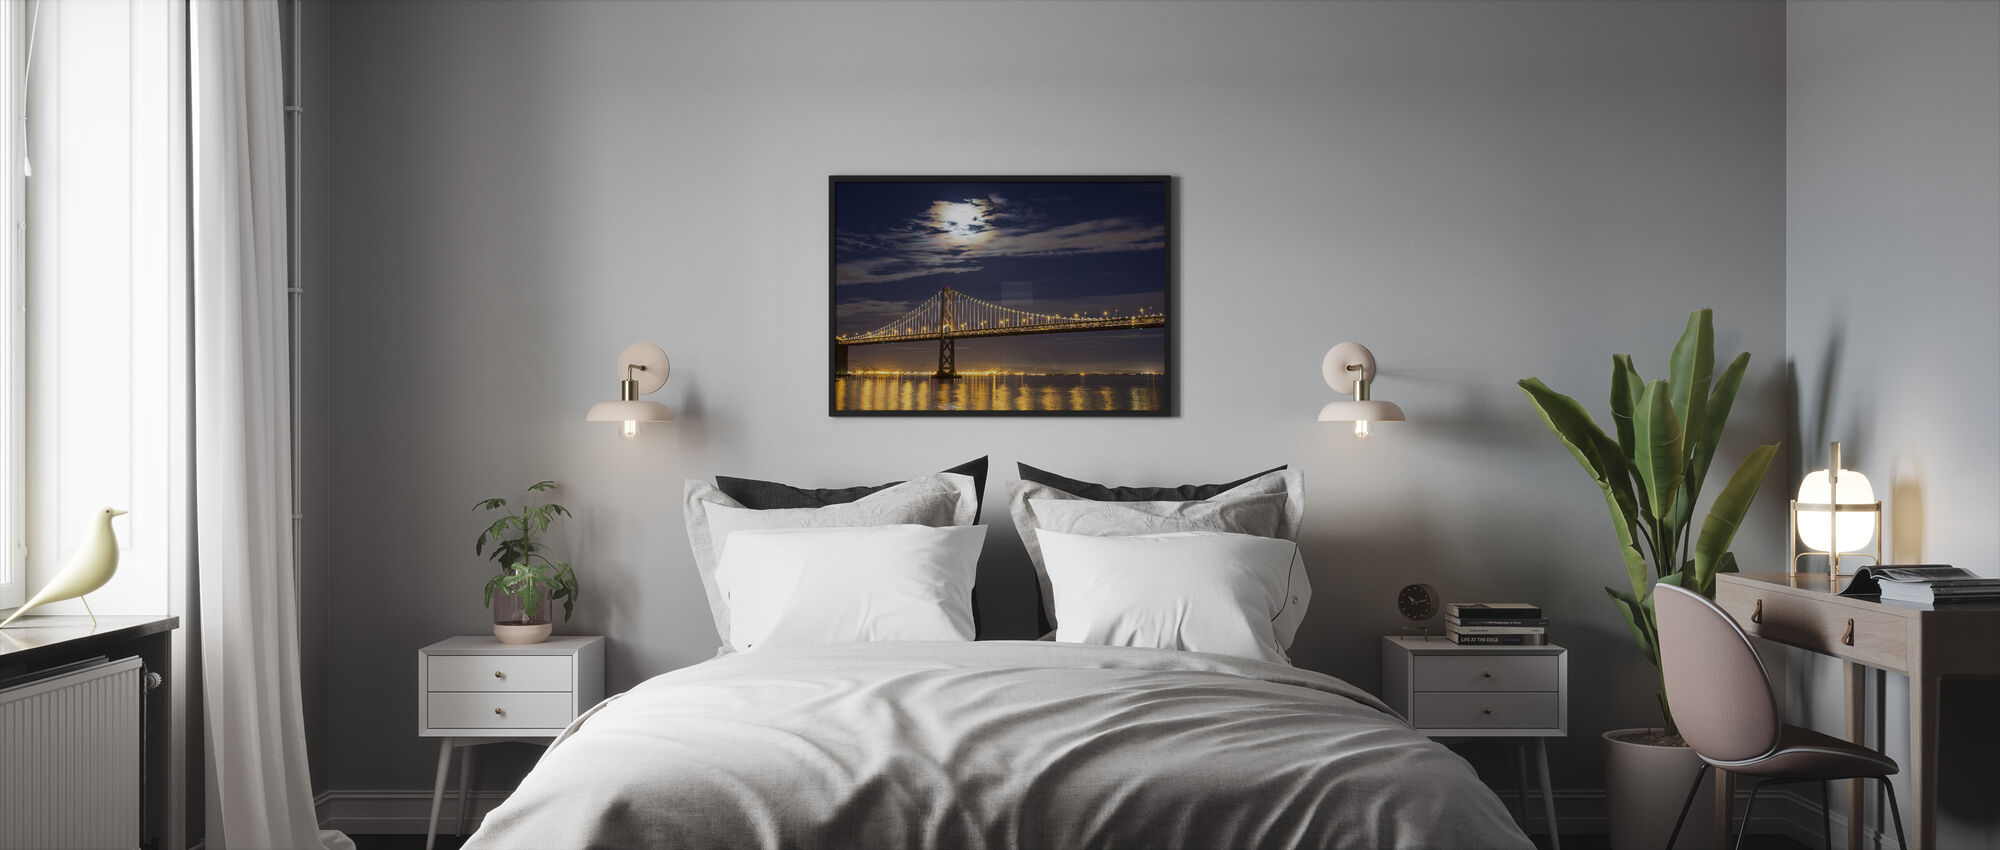 Moonrise over Bay Bridge - Framed print - Bedroom